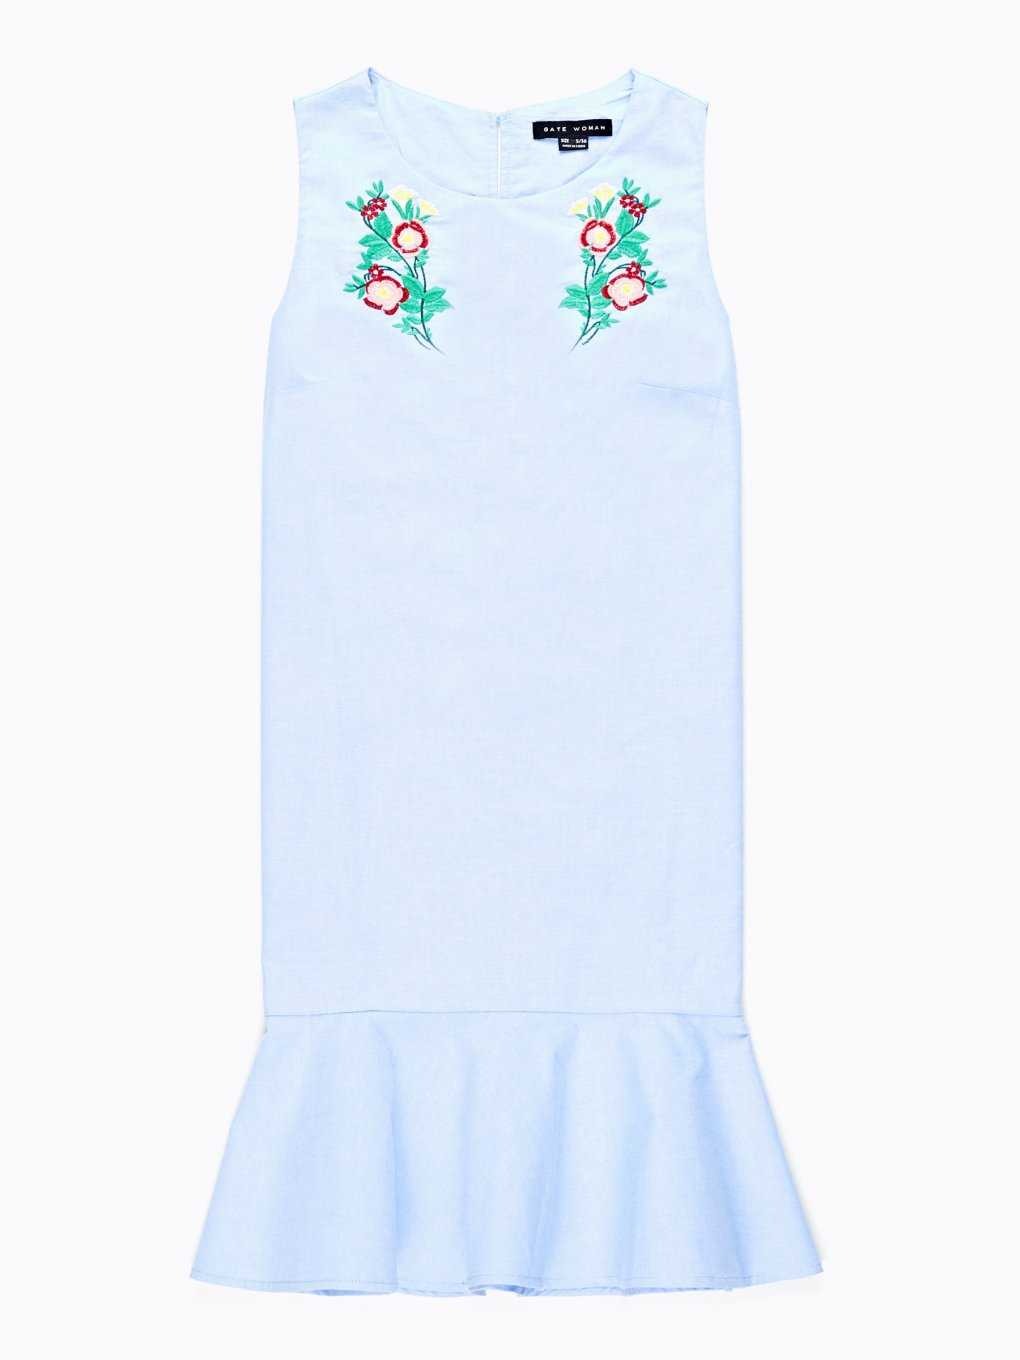 Sleeveless dress with floral embroidery